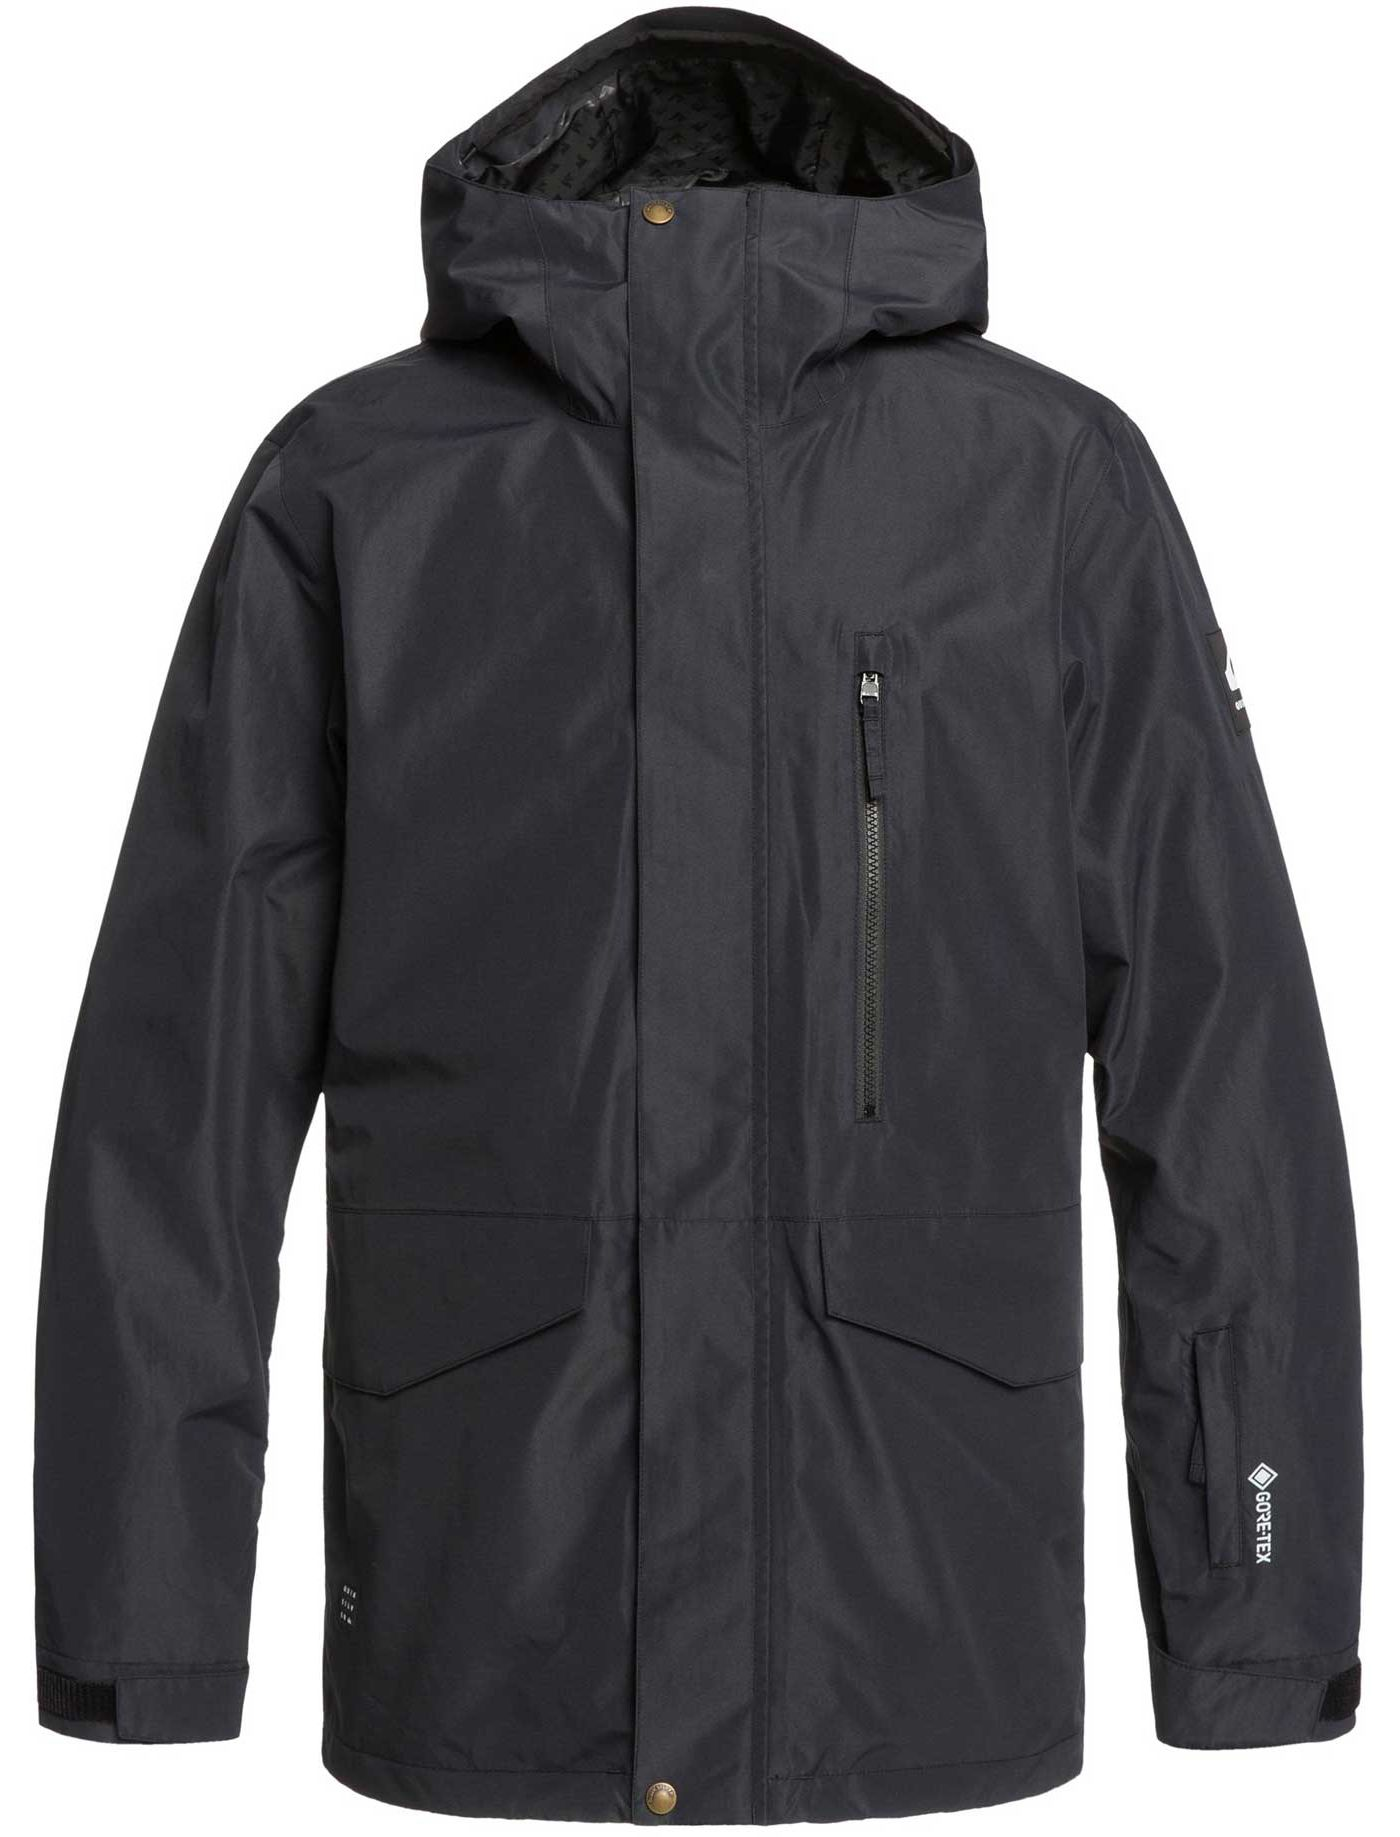 Quiksilver Men's Mission Gore-Tex 2L Snow Jacket